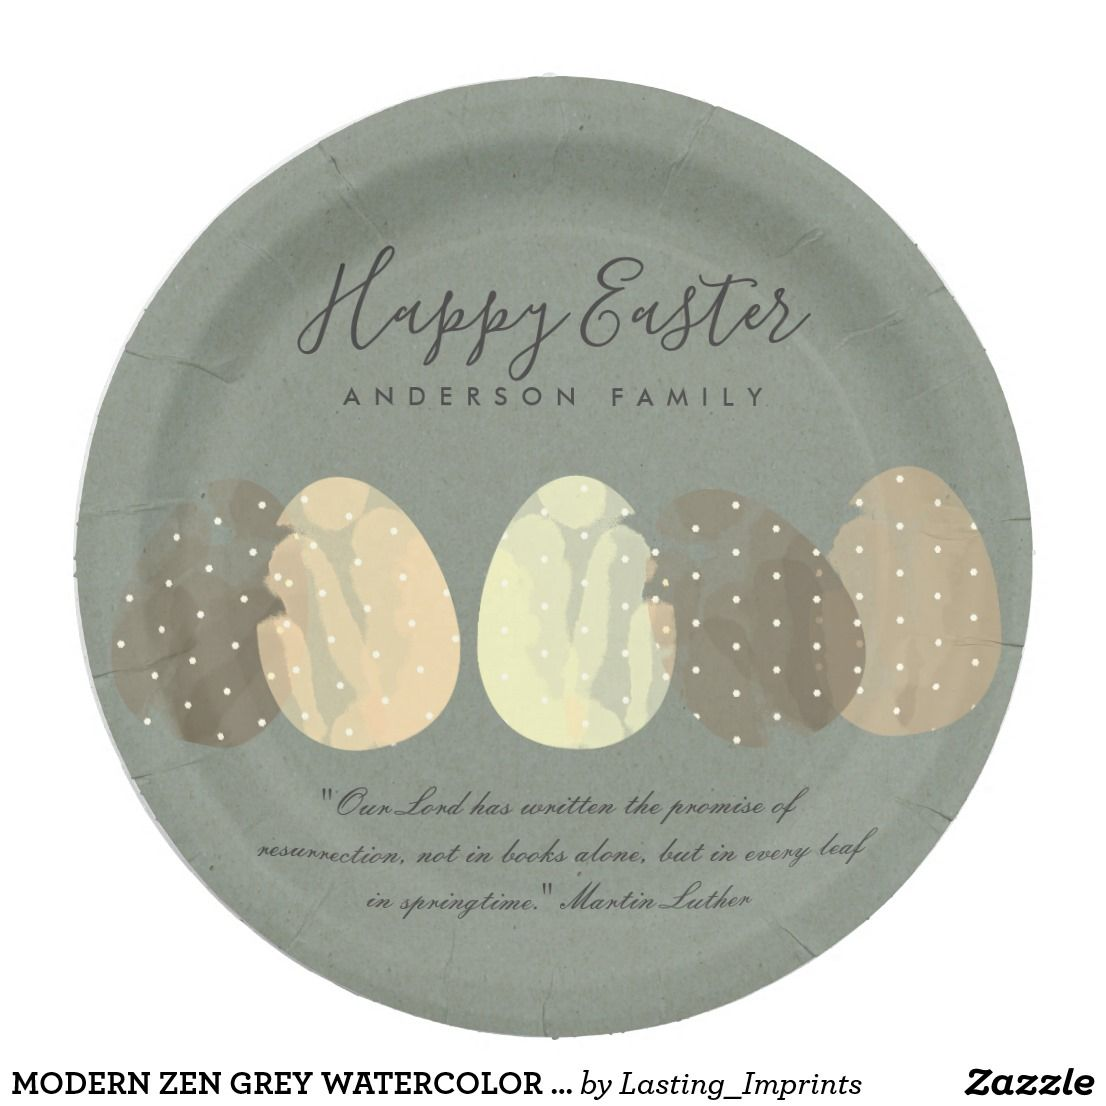 MODERN ZEN GREY WATERCOLOR EASTER EGGS PERSONALIZE PAPER PLATE  sc 1 st  Pinterest & MODERN ZEN GREY WATERCOLOR EASTER EGGS PERSONALIZE PAPER PLATE ...